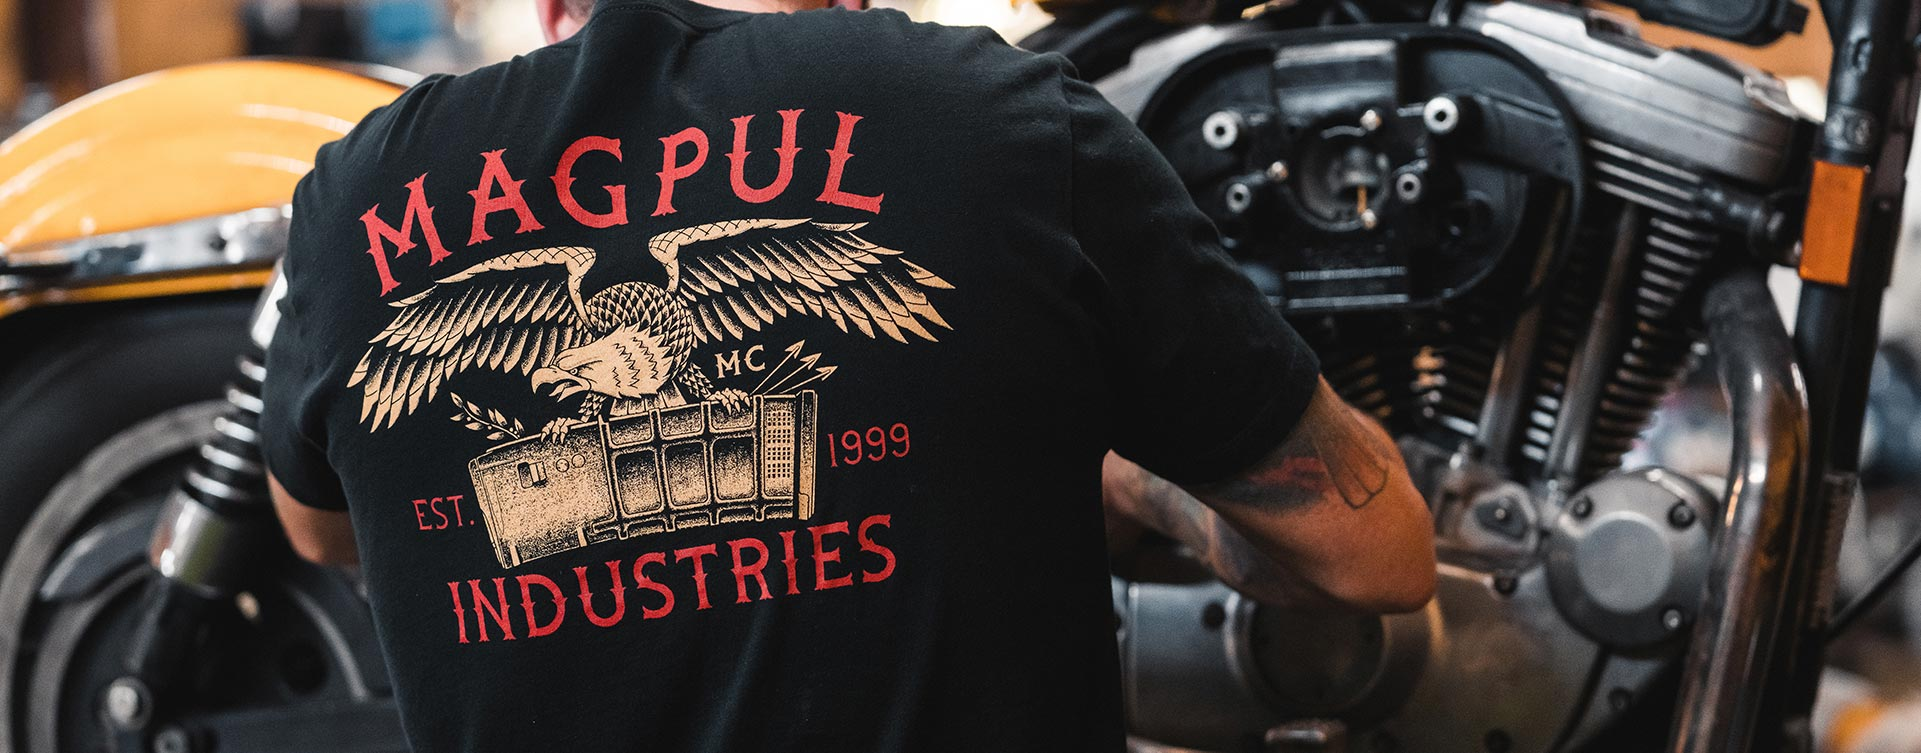 Back of Magpul Magazine Club Cotton T-Shirt on man working on a motorcycle in the shop